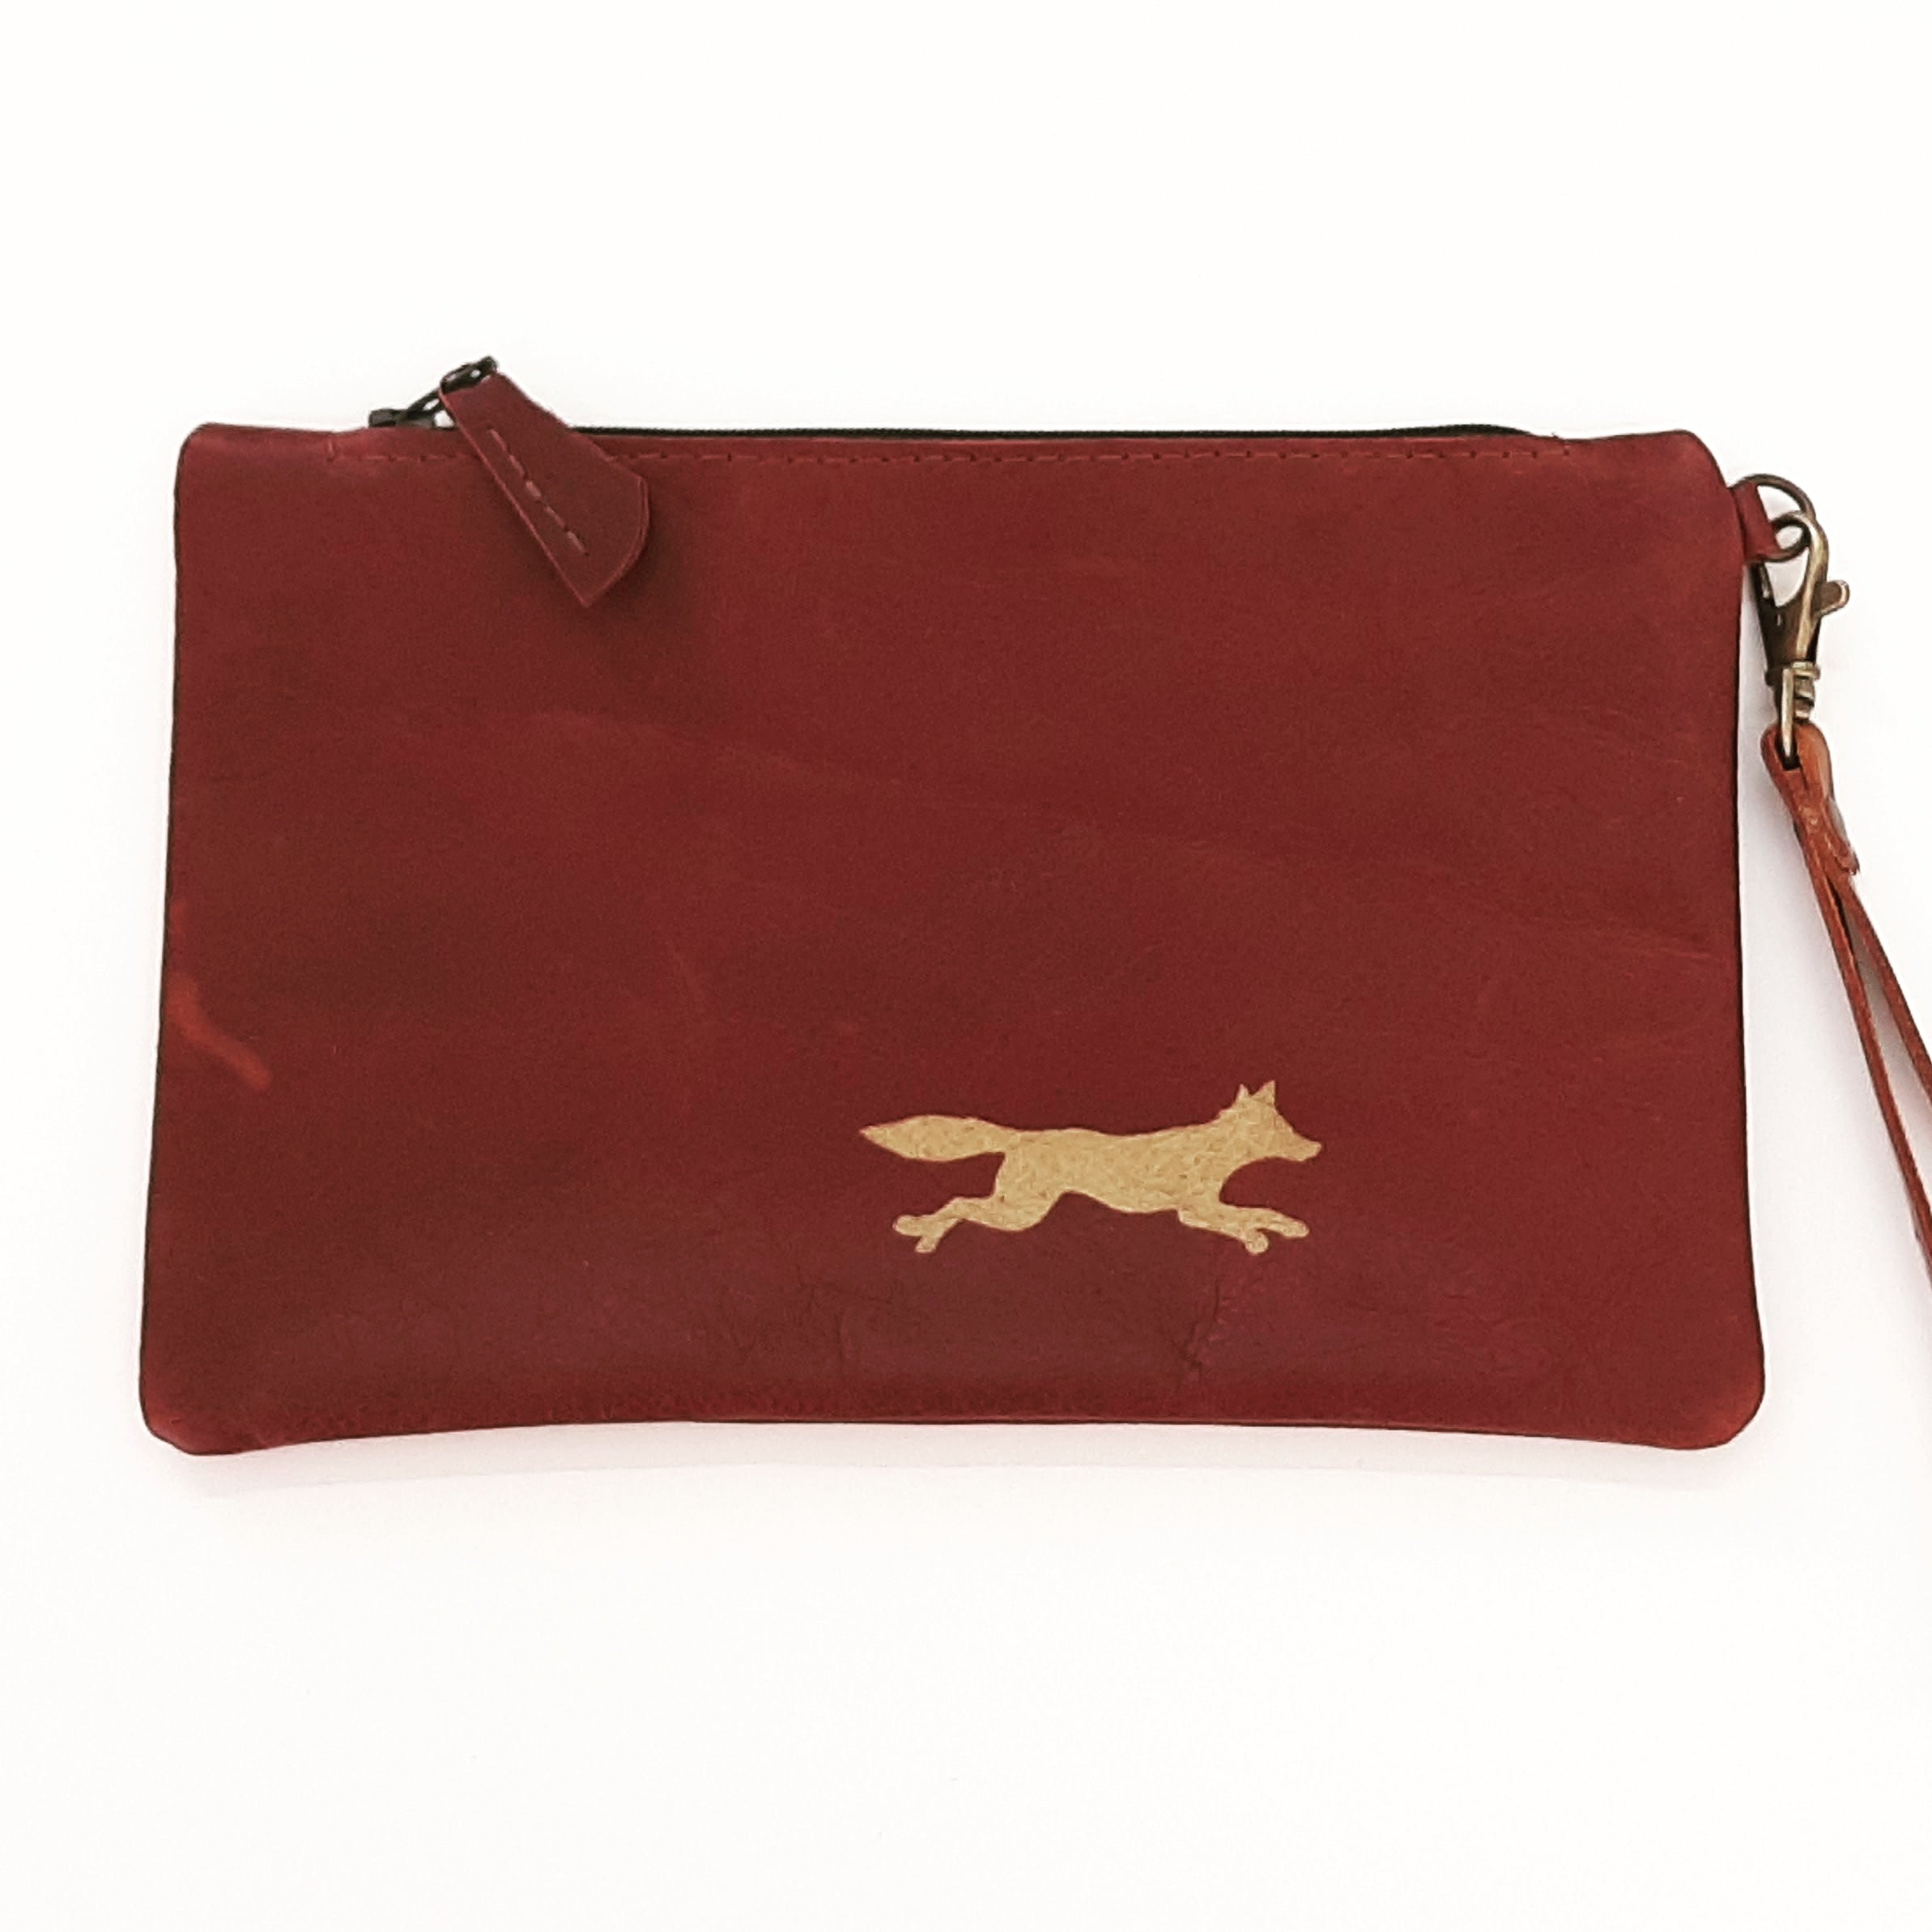 Fox & Hound Leather Purse - Coterie Leather Bags